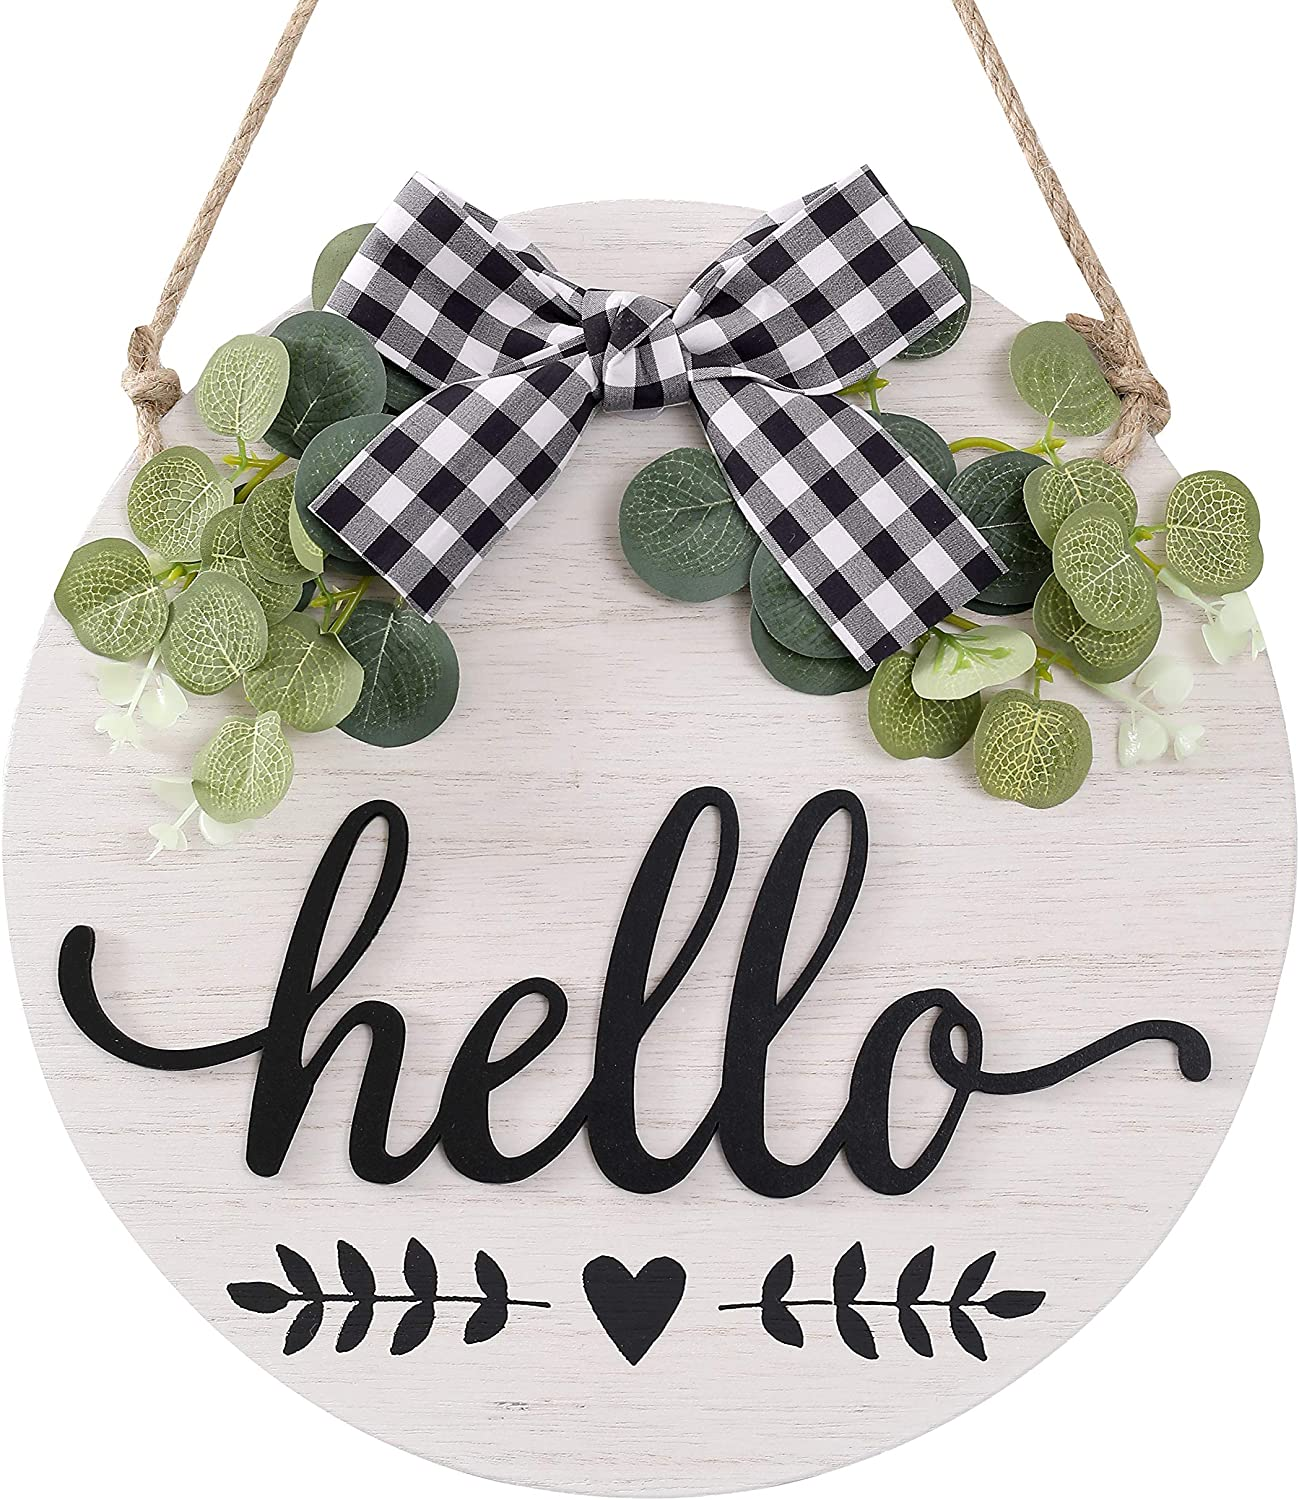 CYNOSA Welcome Hello Sign Porch for Front Door Decor, Rustic Wooden Door Hangers Wreath Decoration Wall Hanging Vertical Sign Farmhouse Outdoor Wall Decor (Hello White)